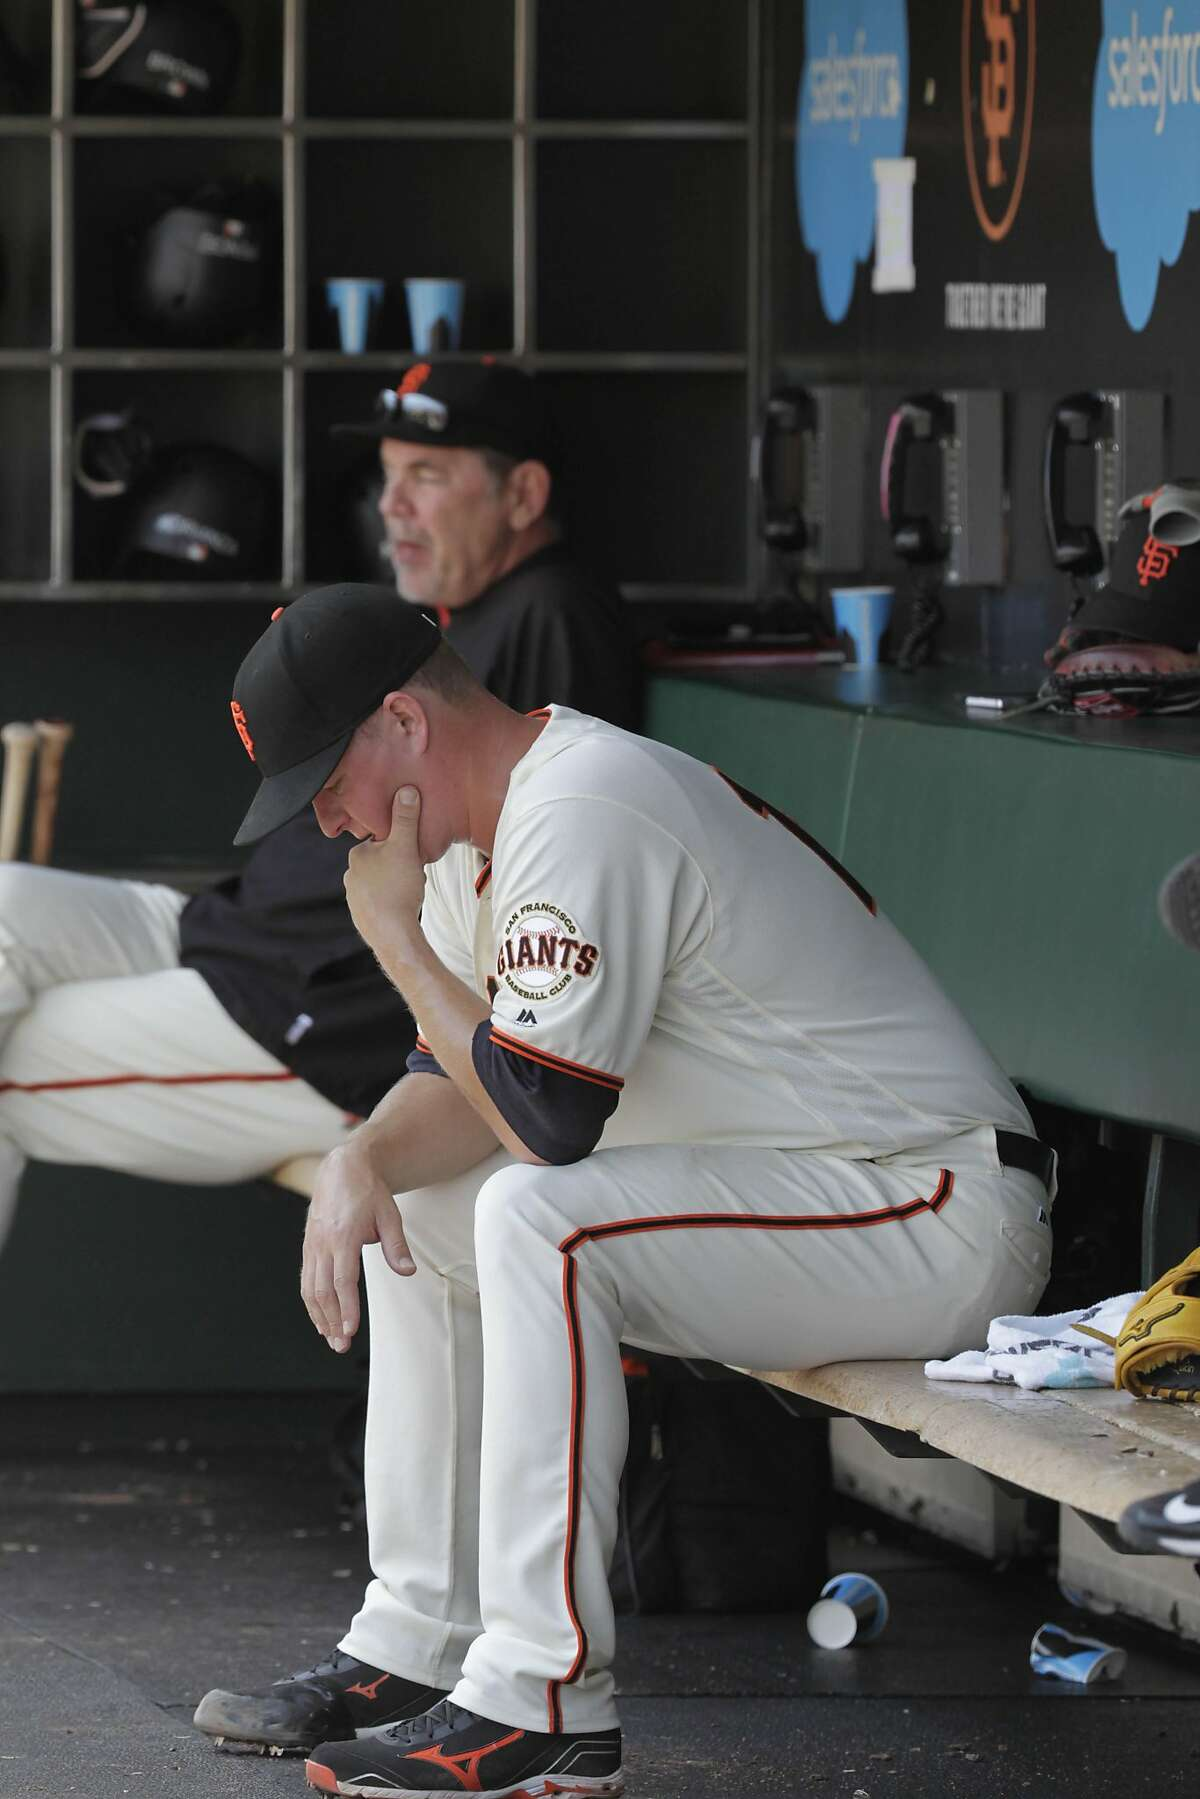 Matt Cain, pitcher, sits in the dug out after being relieved in the top of the fifth inning as the San Francisco Giants play the Pittsburgh Pirates on Wednesday, August 17, 2016 in San Francisco, California. �Final Score: Pittsburgh Pirates: 6 San Francisco Giants: 5